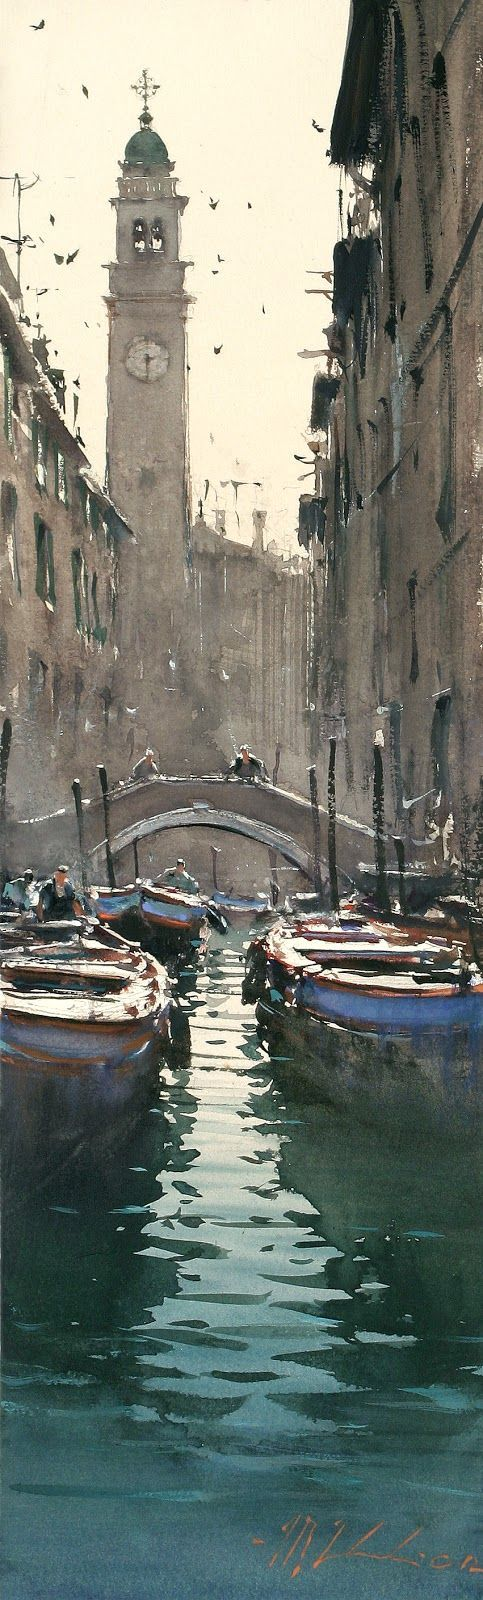 Barges, Venice - Watercolor by Joseph Zbukvic